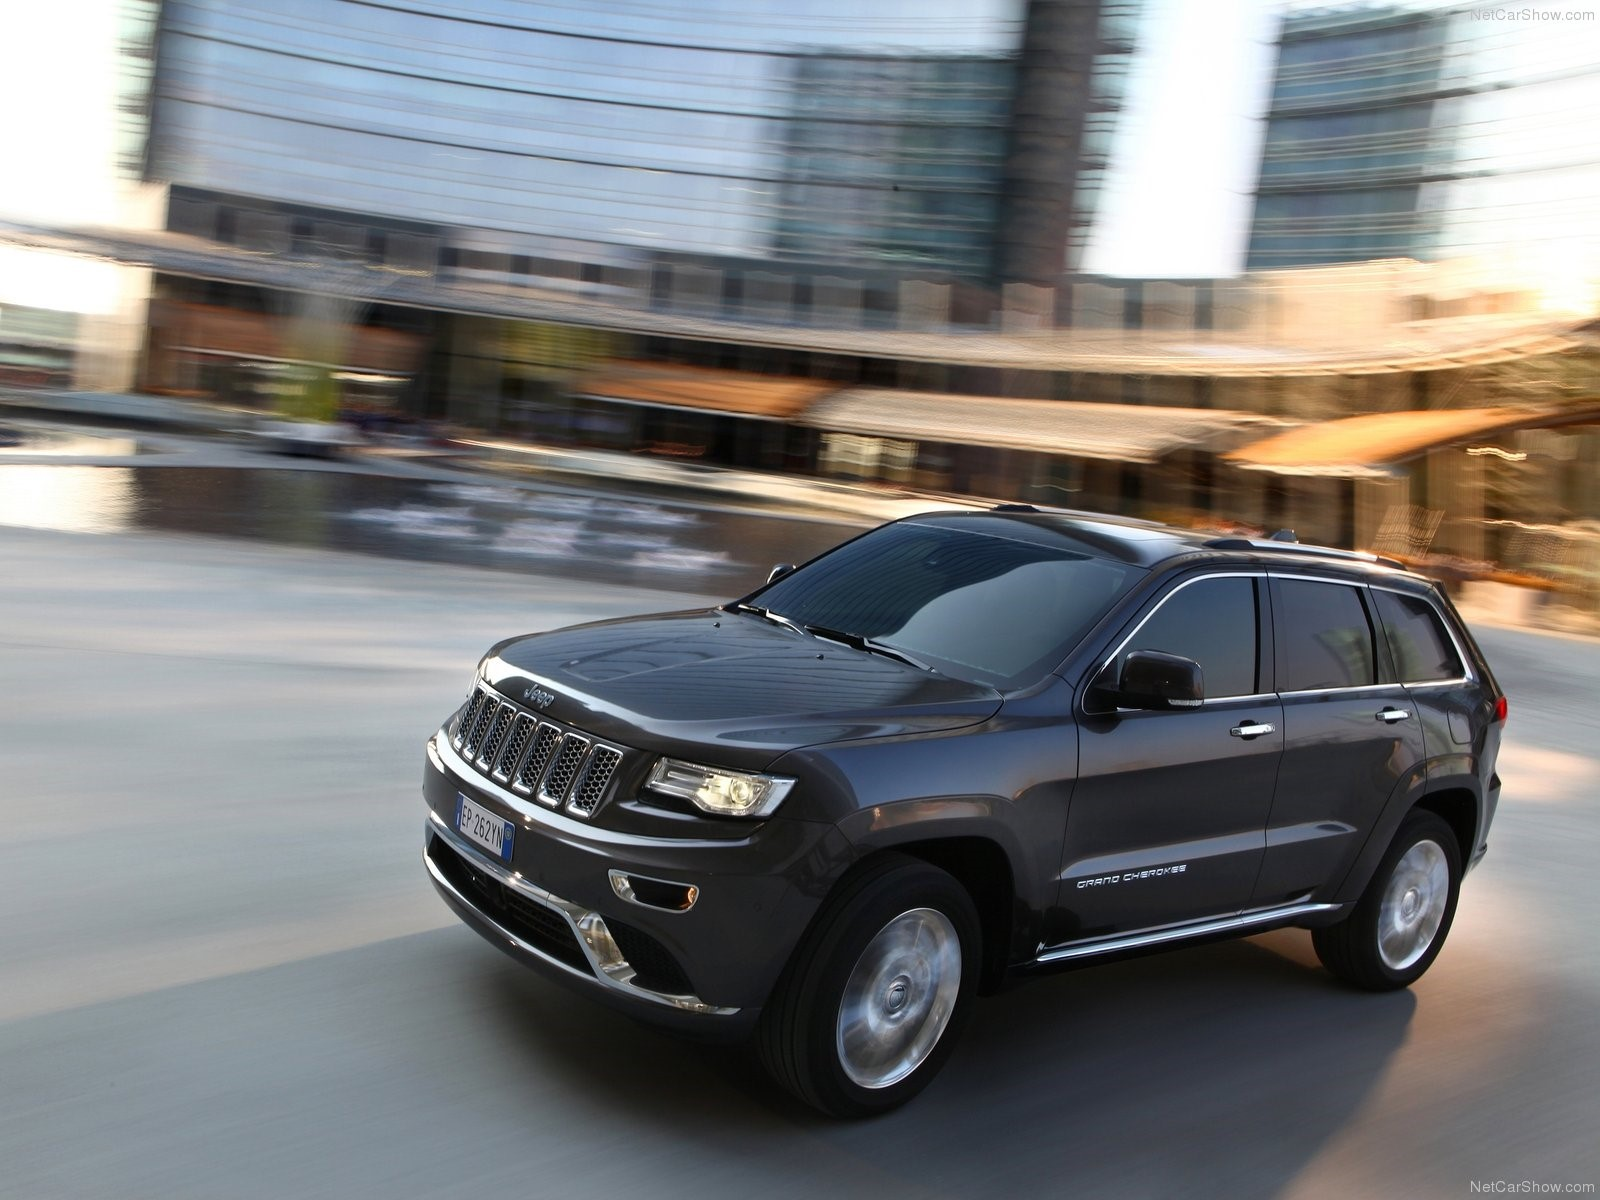 News autopacific names jeep grand cherokee best in class for 2017 ideal vehicle awards